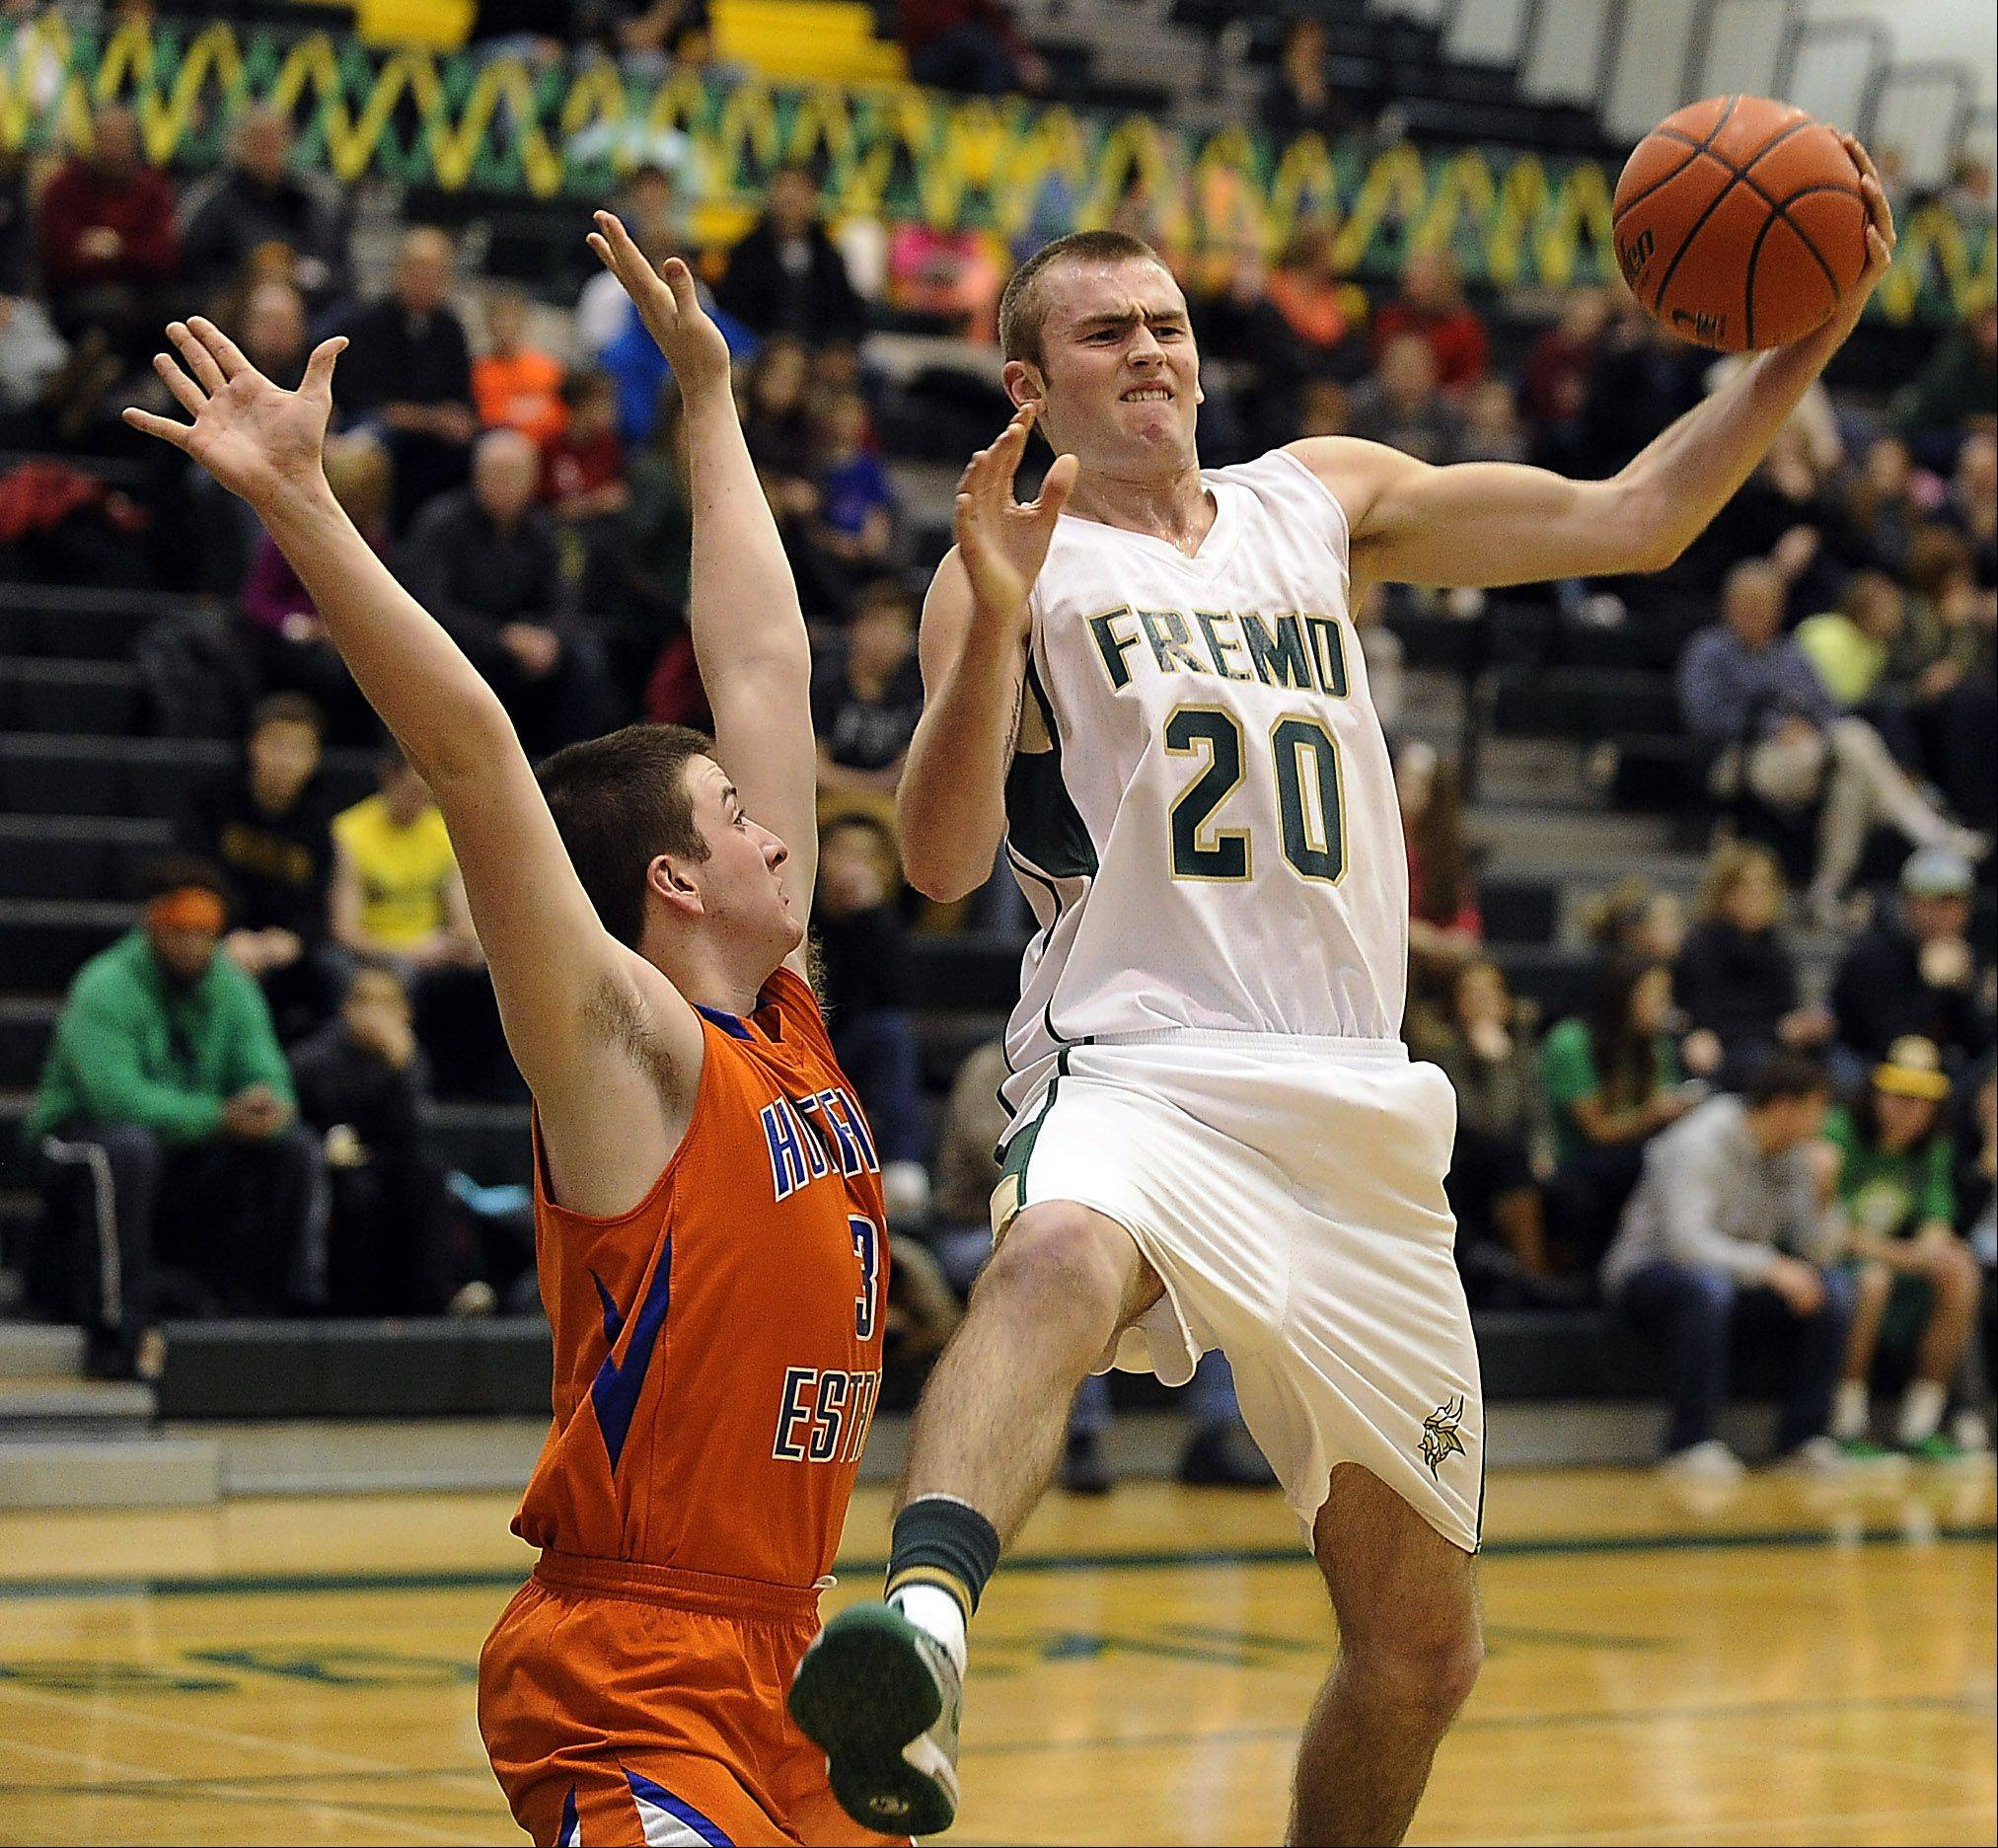 Fremd's Riley Glassmann pulls down a rebound with Hoffman Estates' CJ Conway defending at Fremd on Friday.